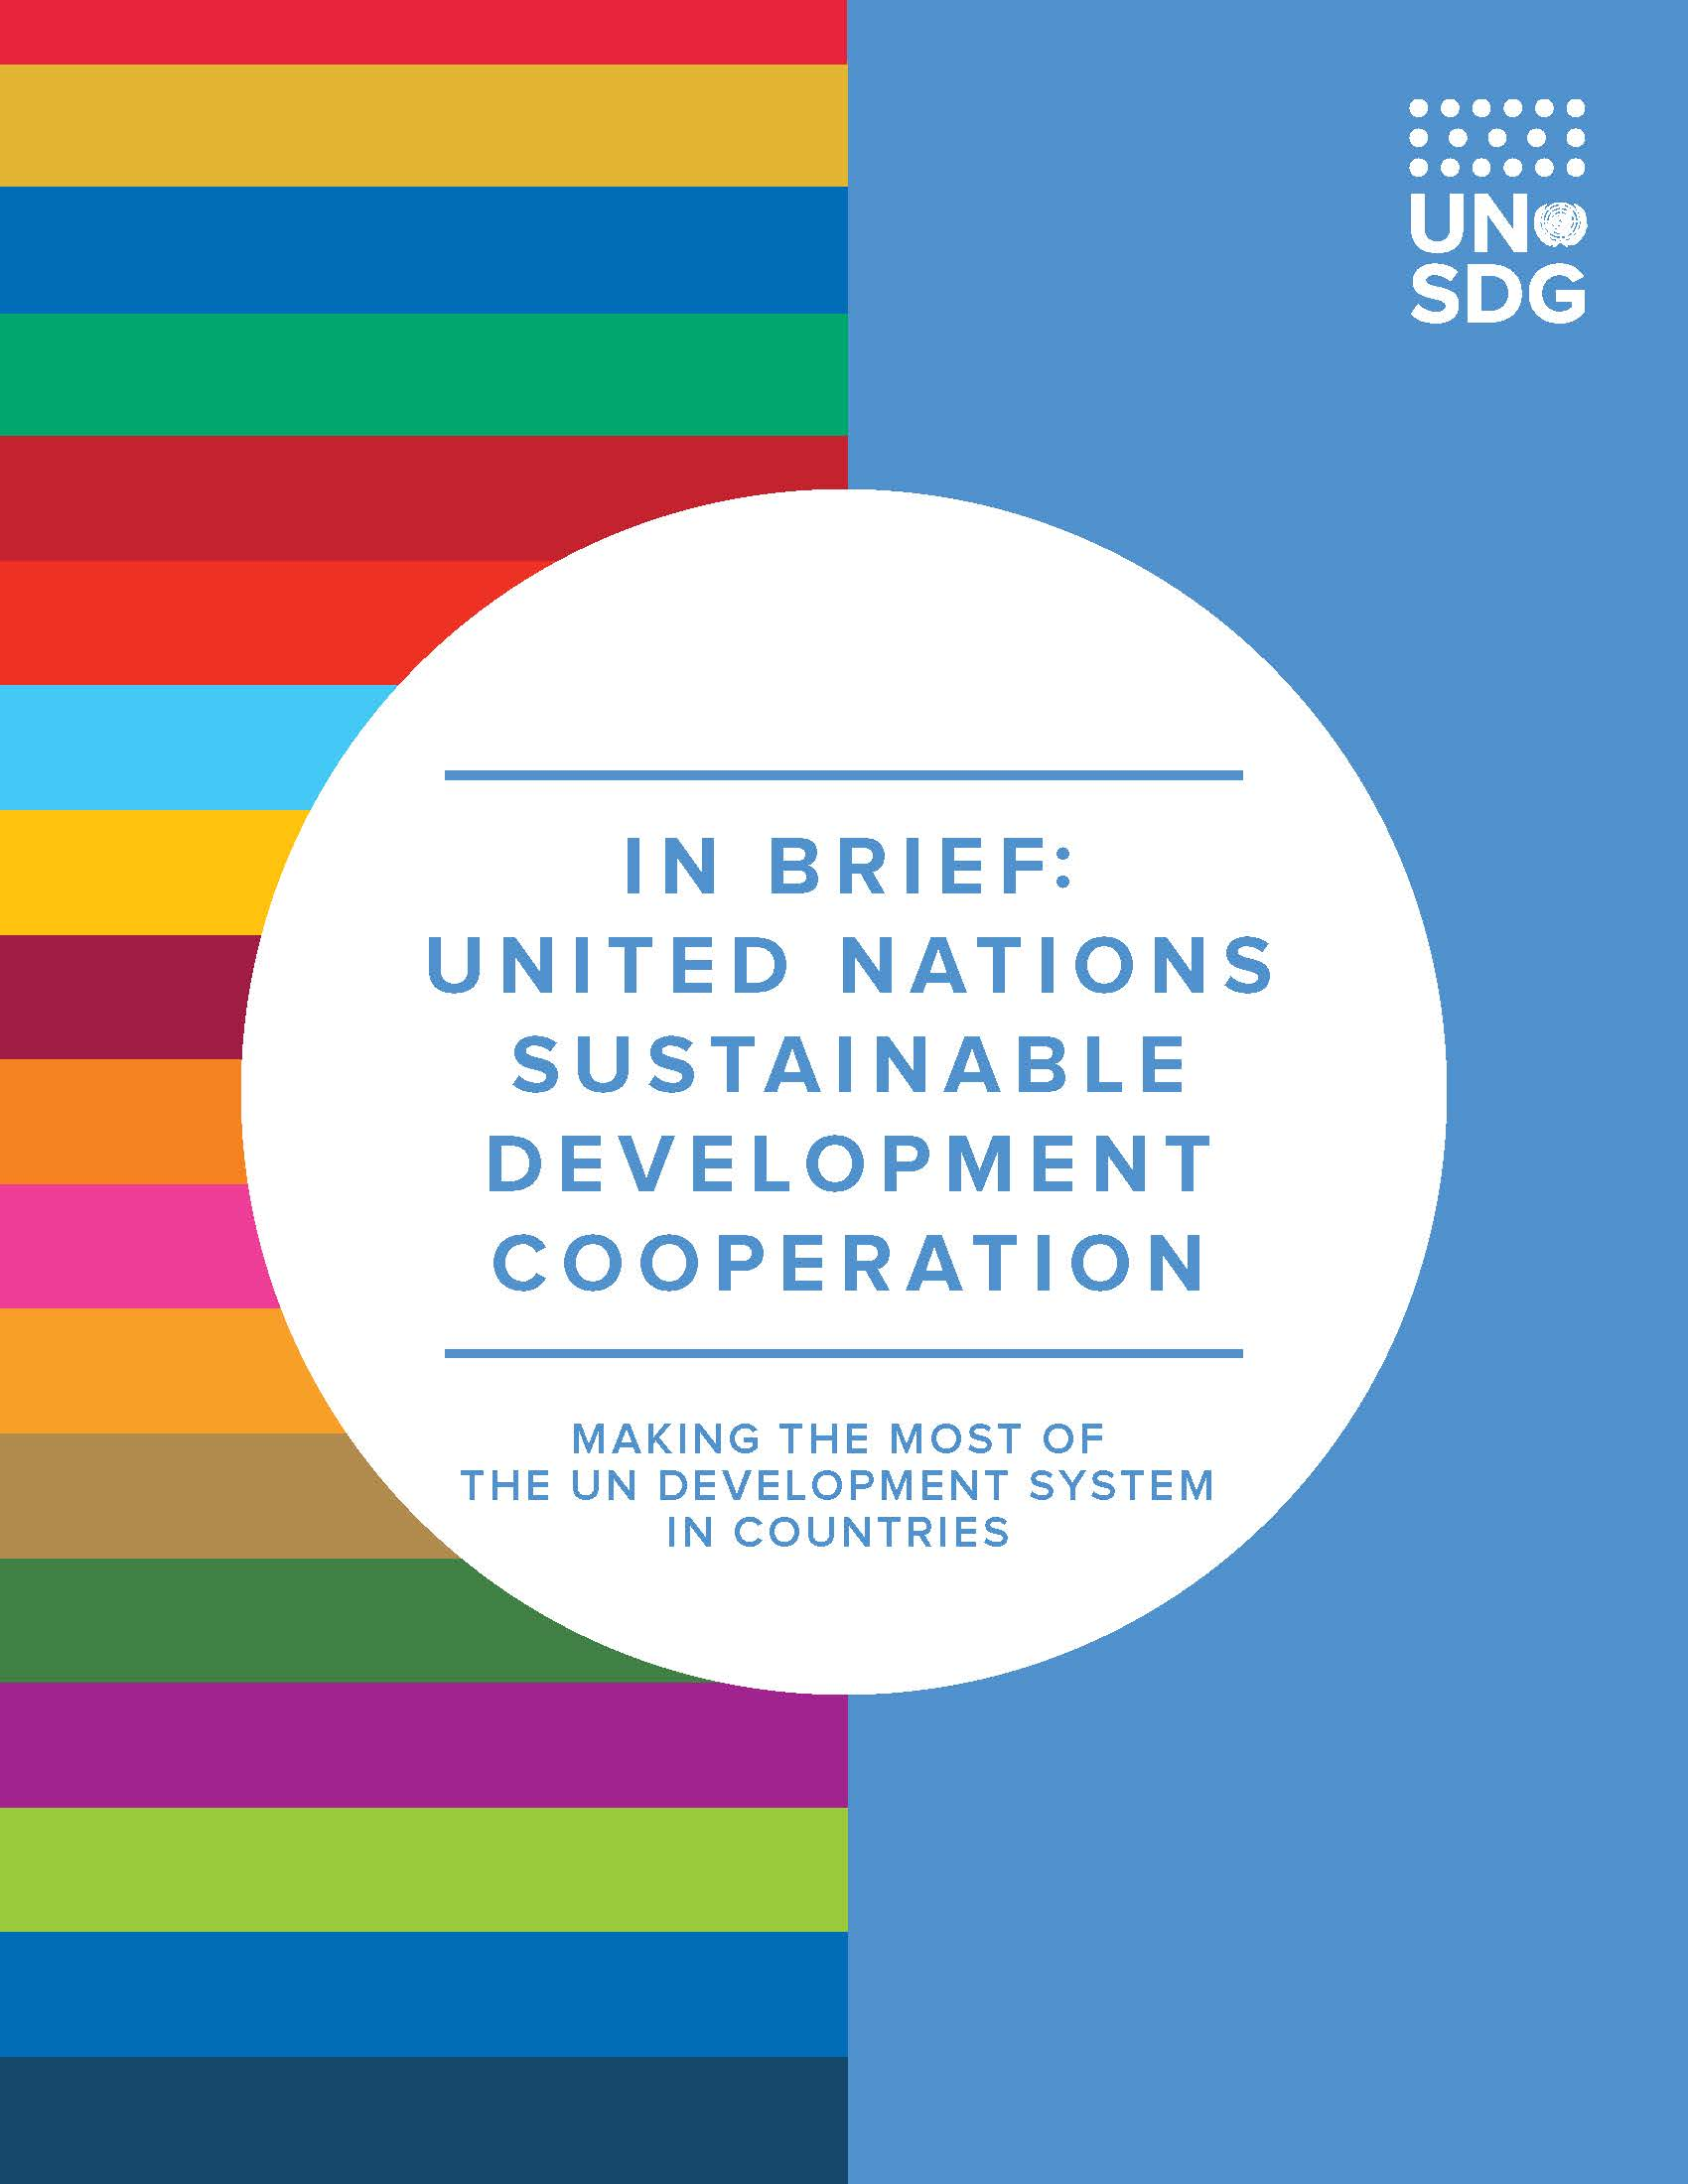 United nations sustainable development cooperation: Making the most of the UN development system in countries